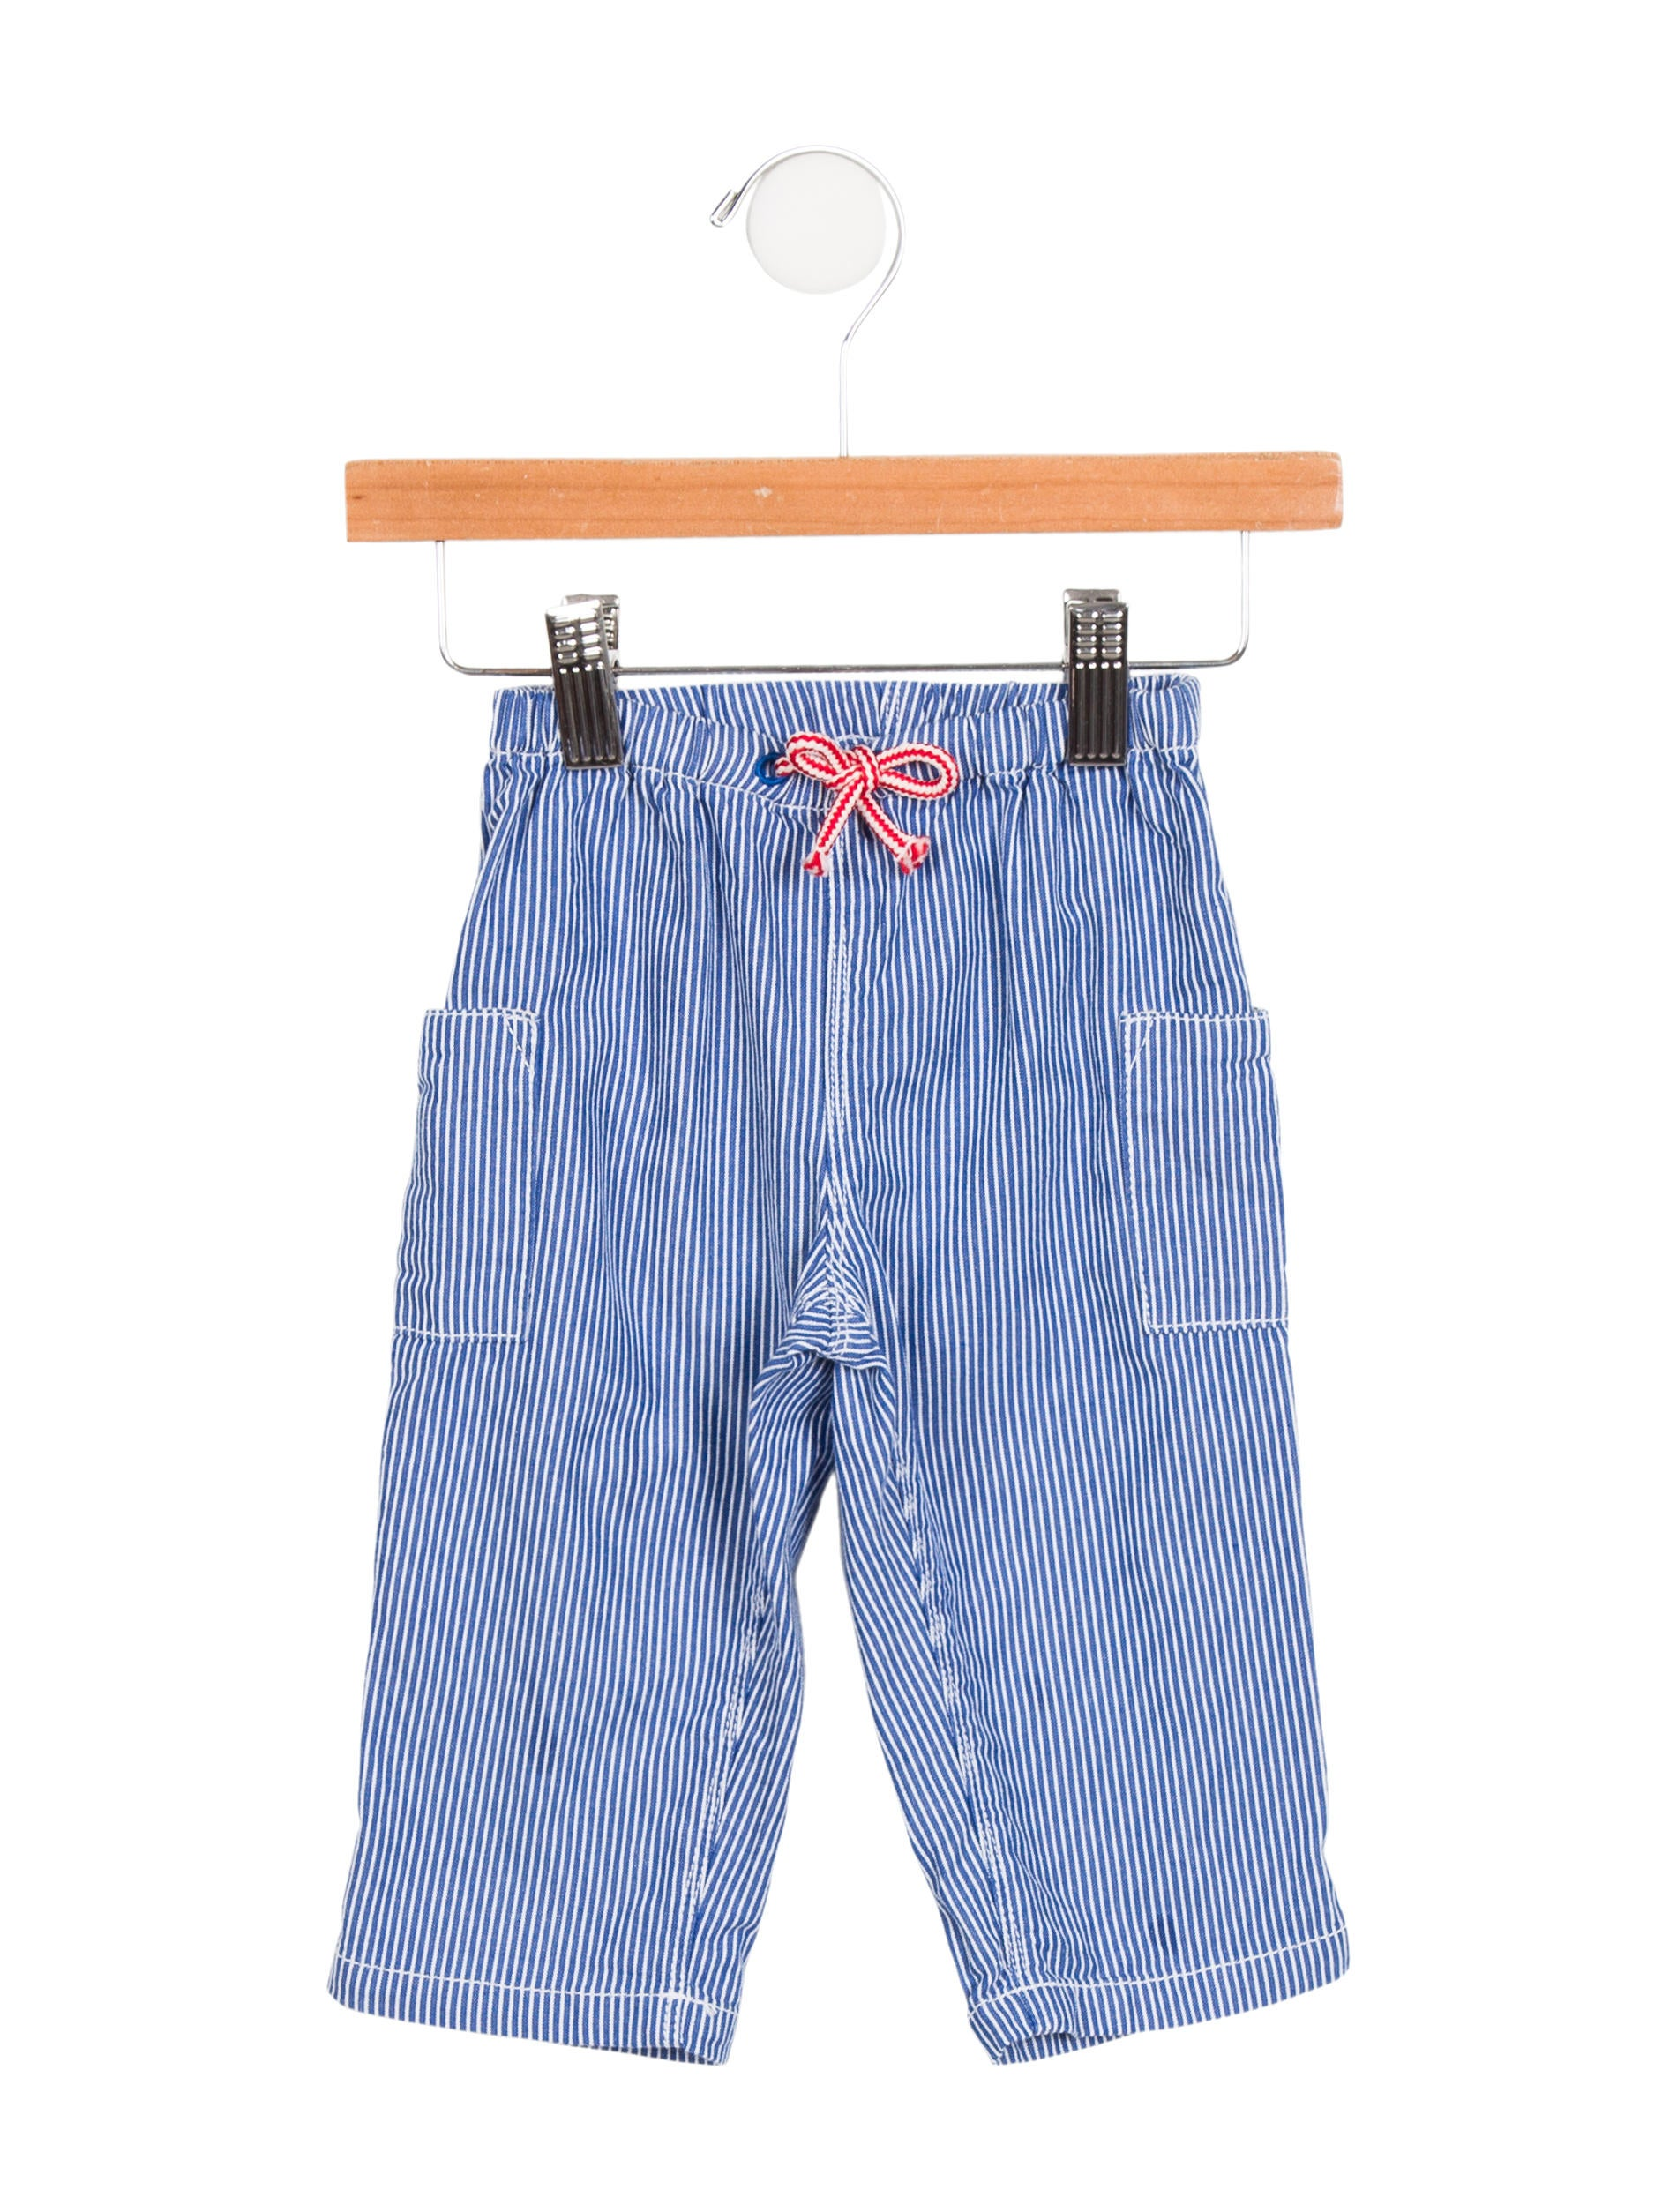 Shop for boys striped shorts online at Target. Free shipping on purchases over $35 and save 5% every day with your Target REDcard.